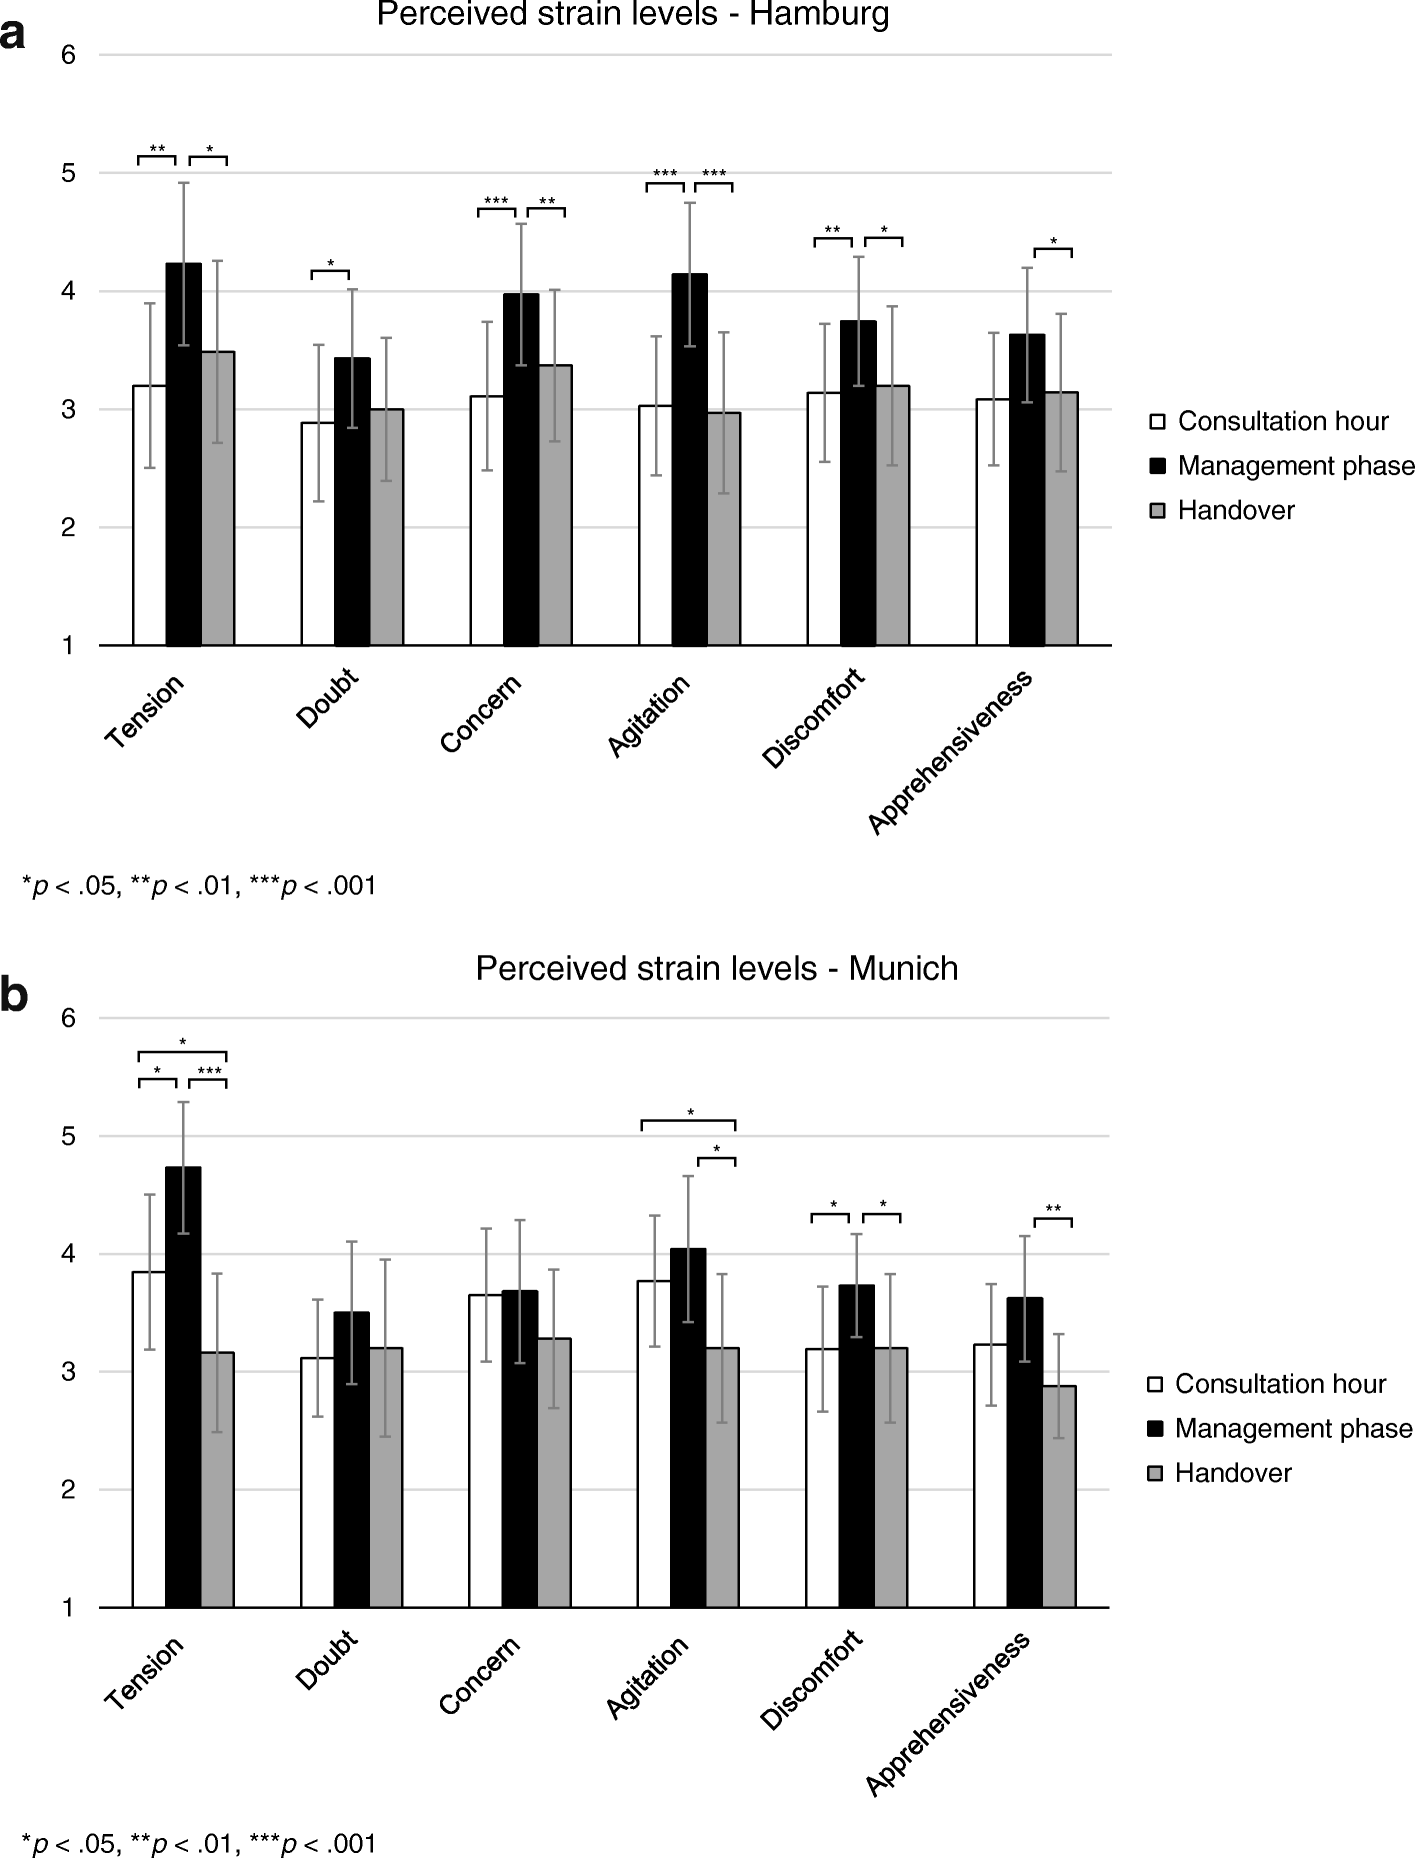 Perceived strain of undergraduate medical students during a